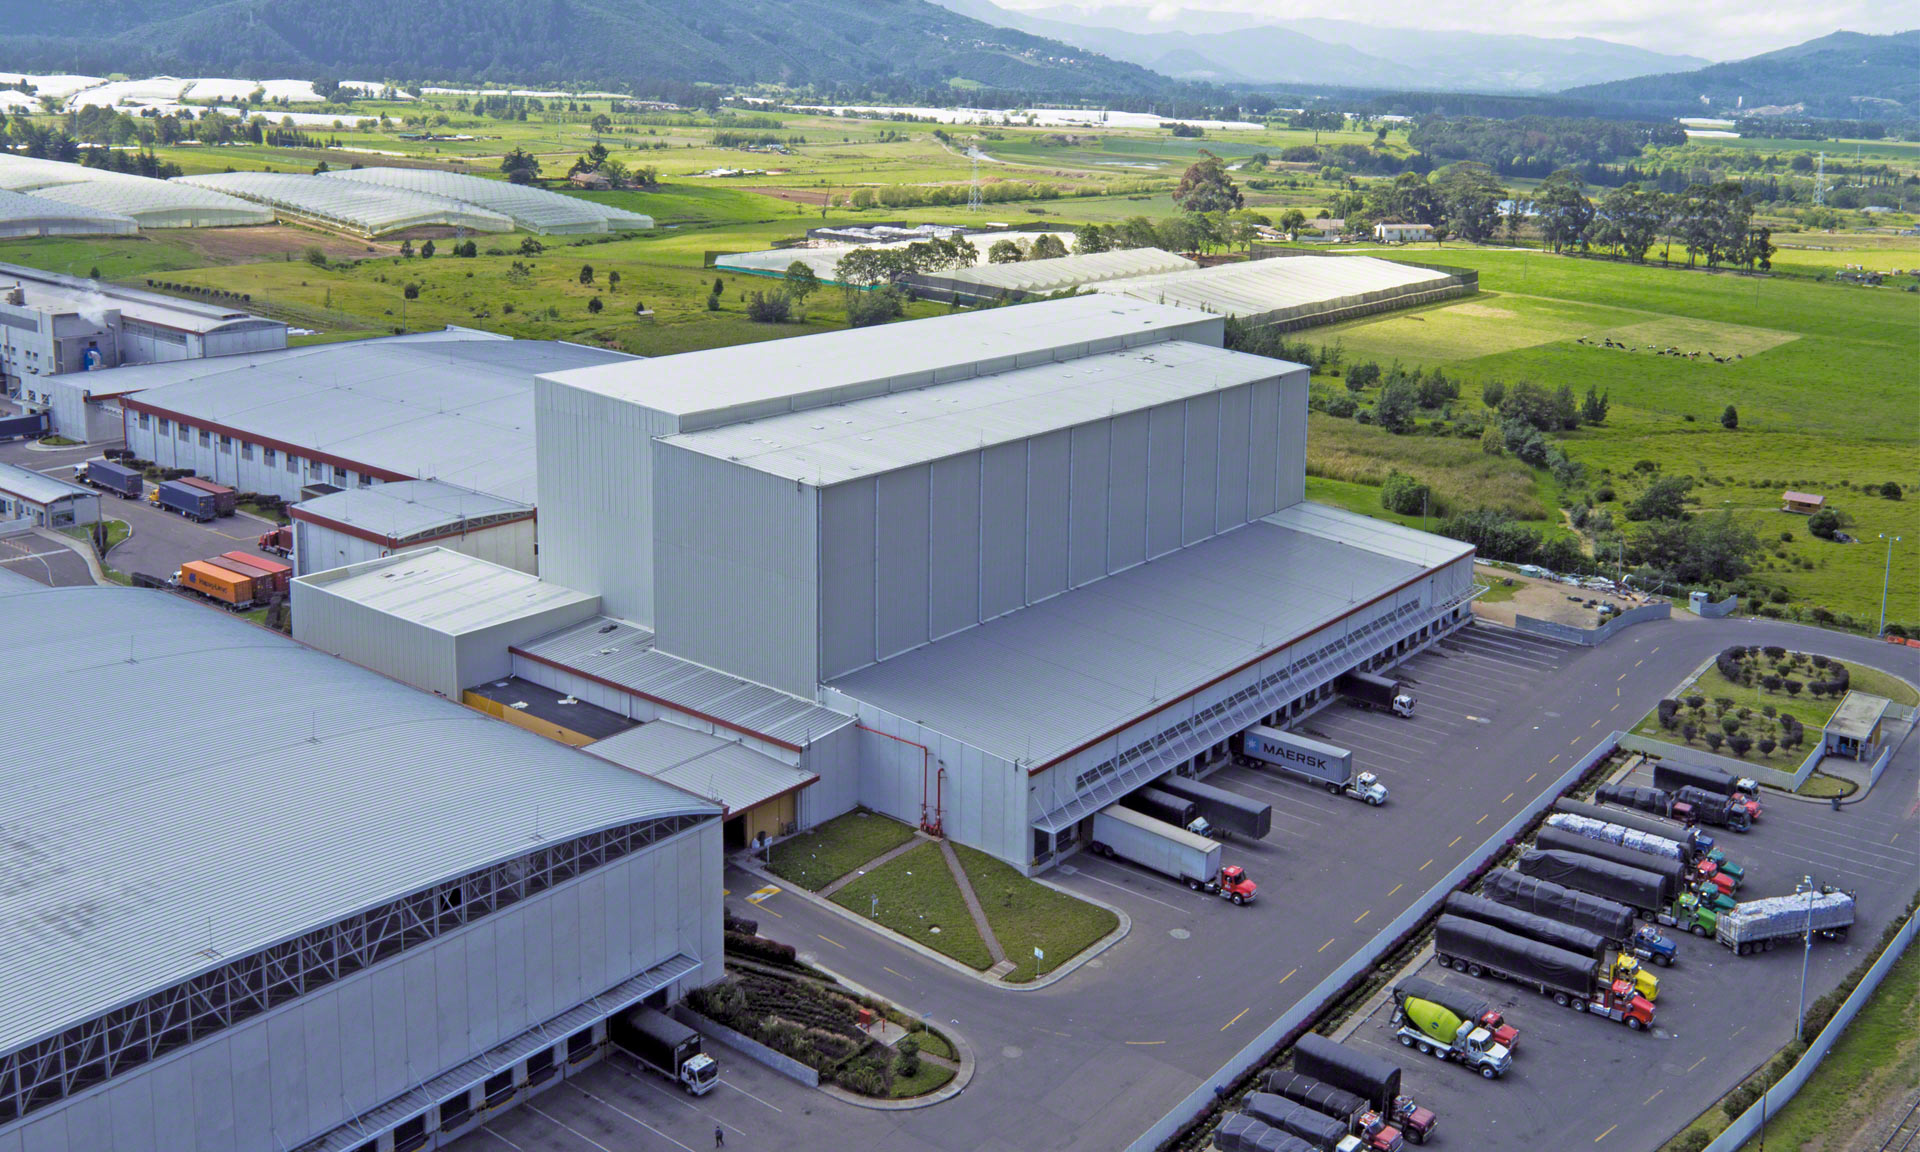 Grupo Familia has a 115' high automated clad-rack warehouse capable of handling around 17,000 pallets